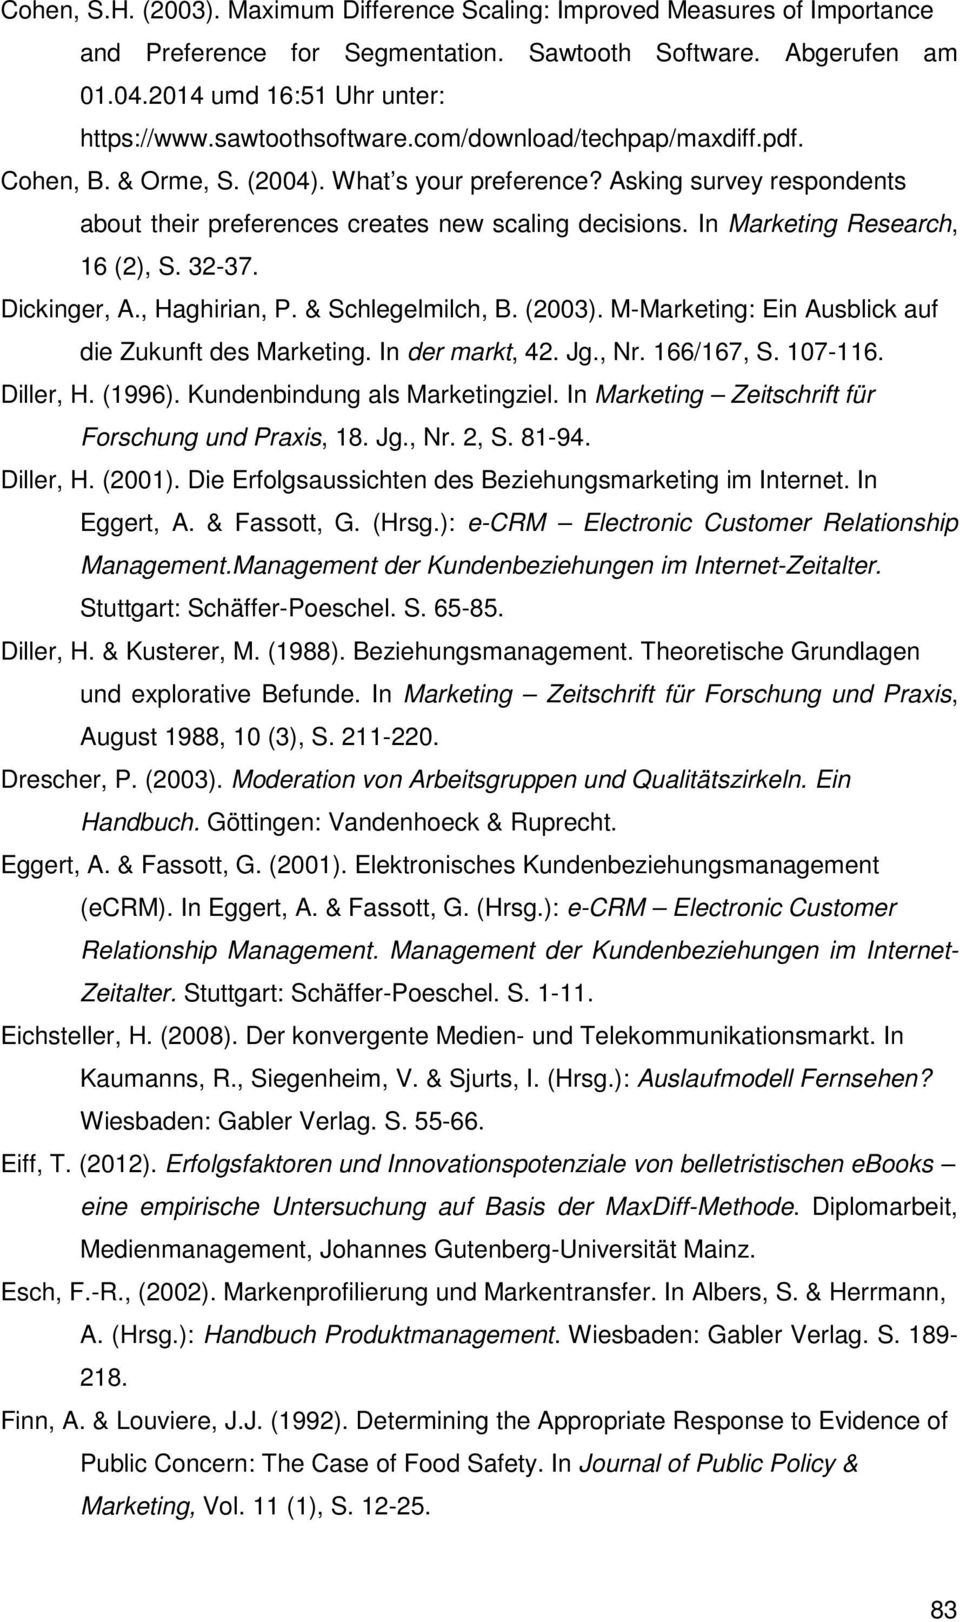 In Marketing Research, 16 (2), S. 32-37. Dickinger, A., Haghirian, P. & Schlegelmilch, B. (2003). M-Marketing: Ein Ausblick auf die Zukunft des Marketing. In der markt, 42. Jg., Nr. 166/167, S.